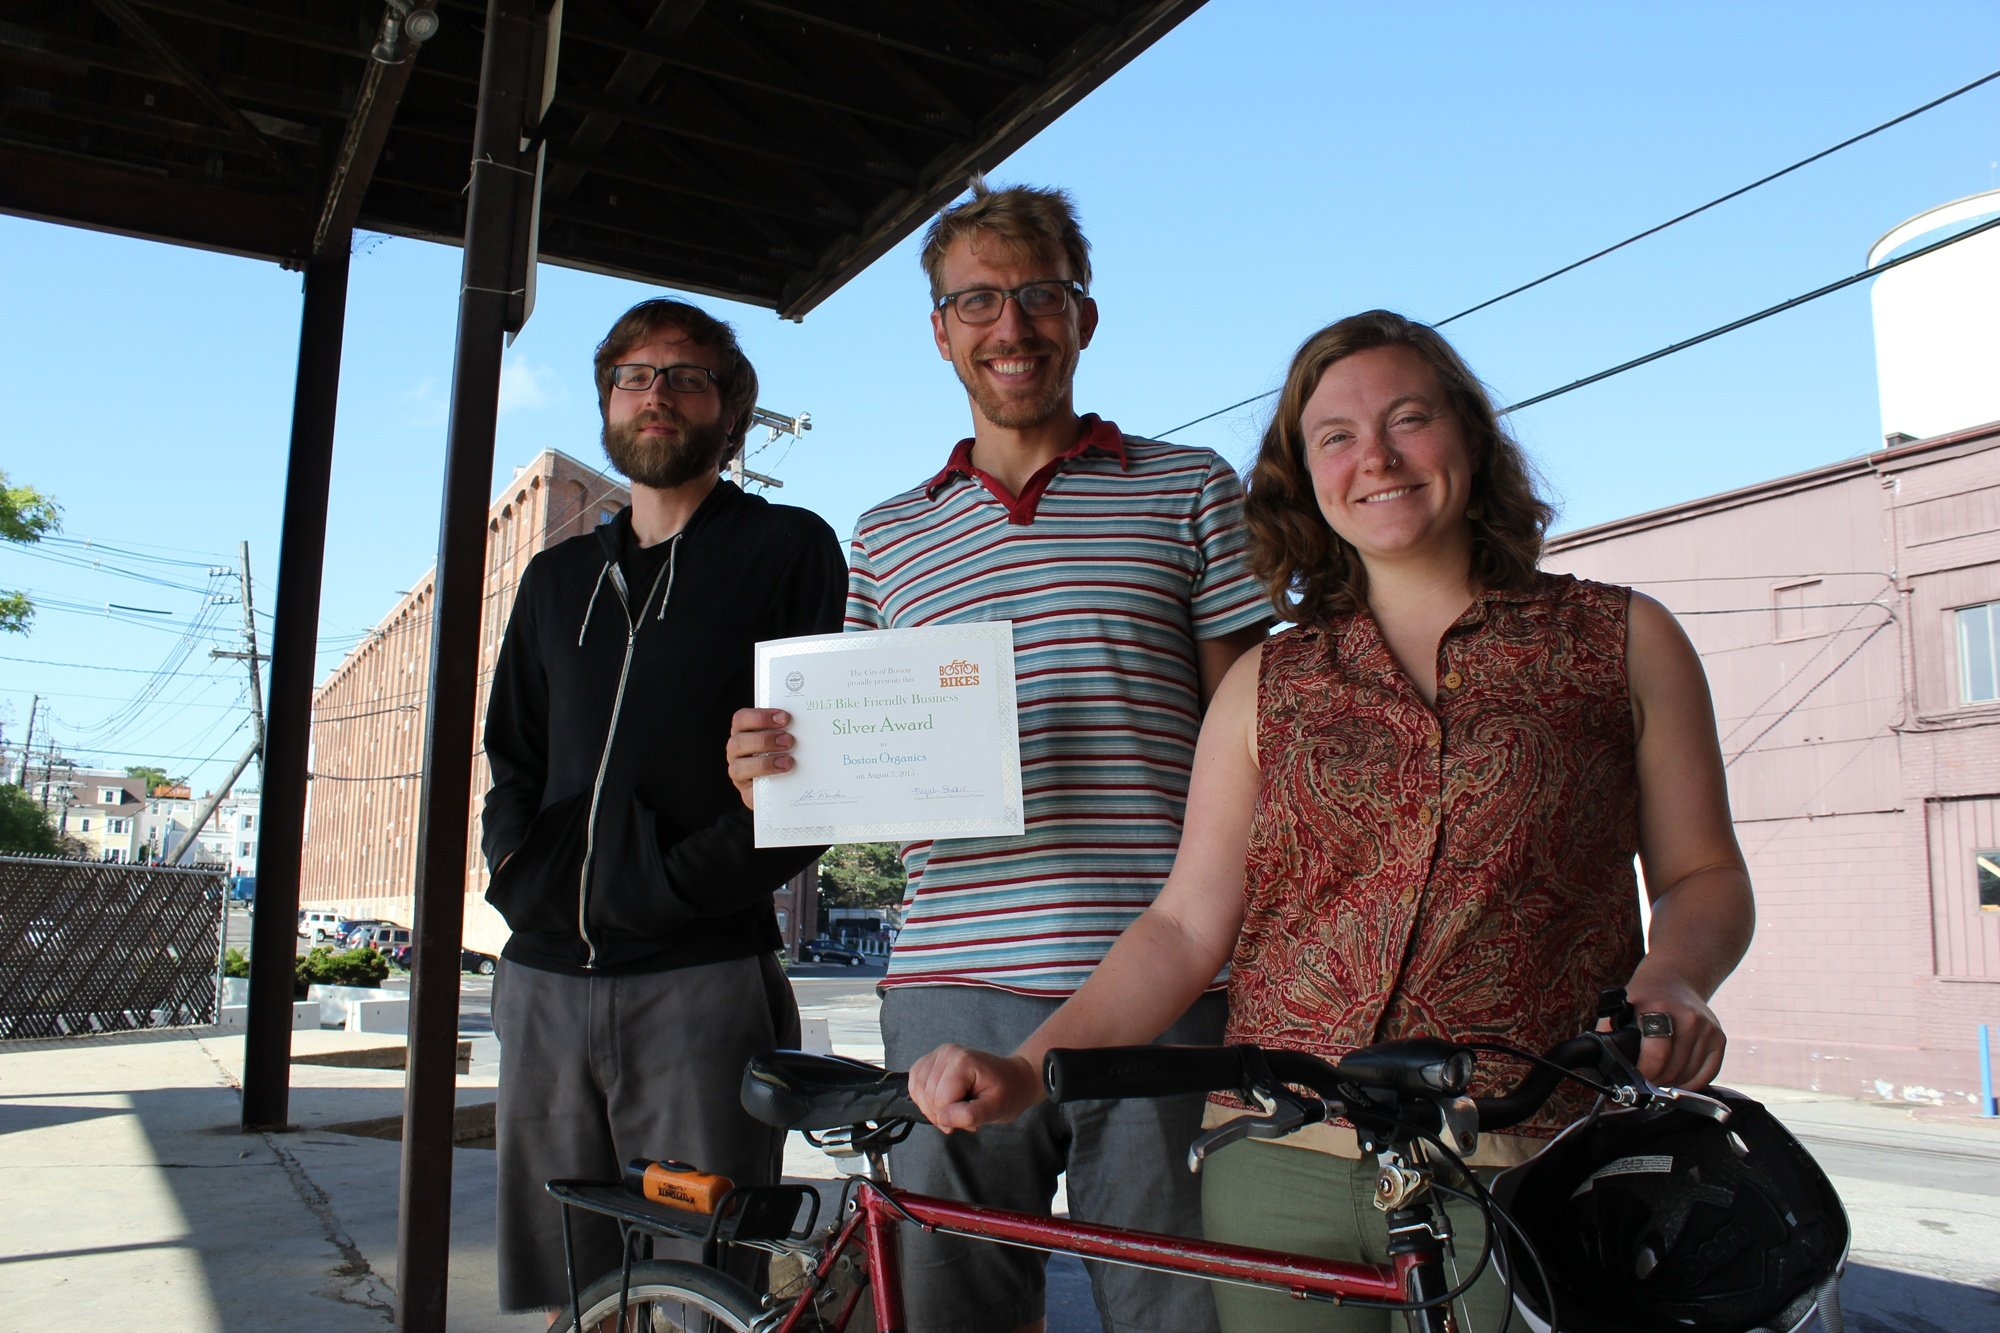 Boston Organics - Bike Friendly Business Award recipient